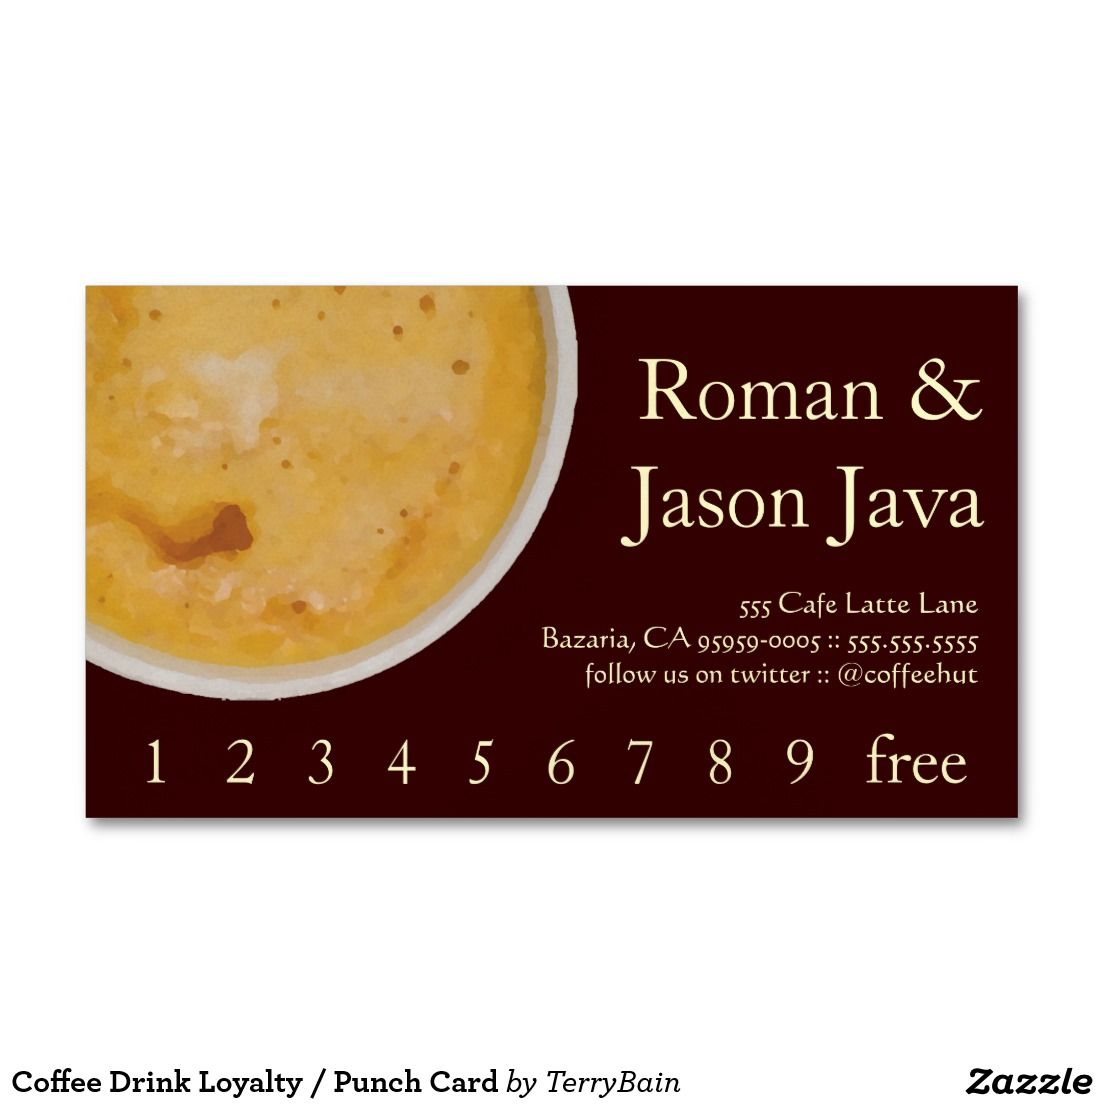 Coffee Drink Loyalty / Punch Card Business Card | Loyal to Coffee ...